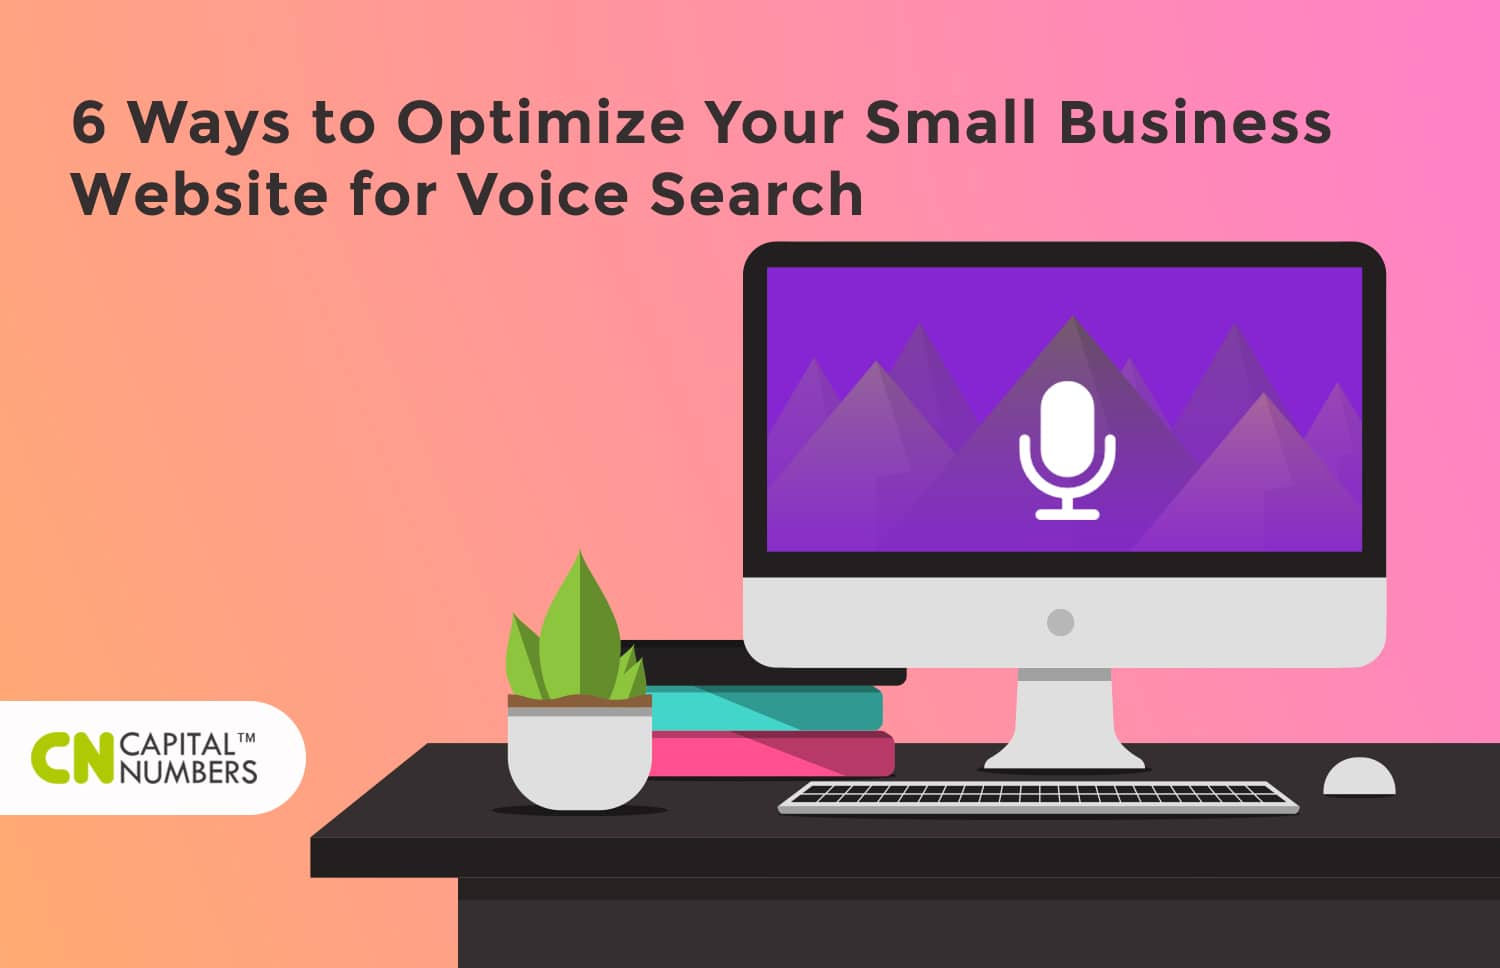 Ways to Optimize Your Small Business Website for Voice Search